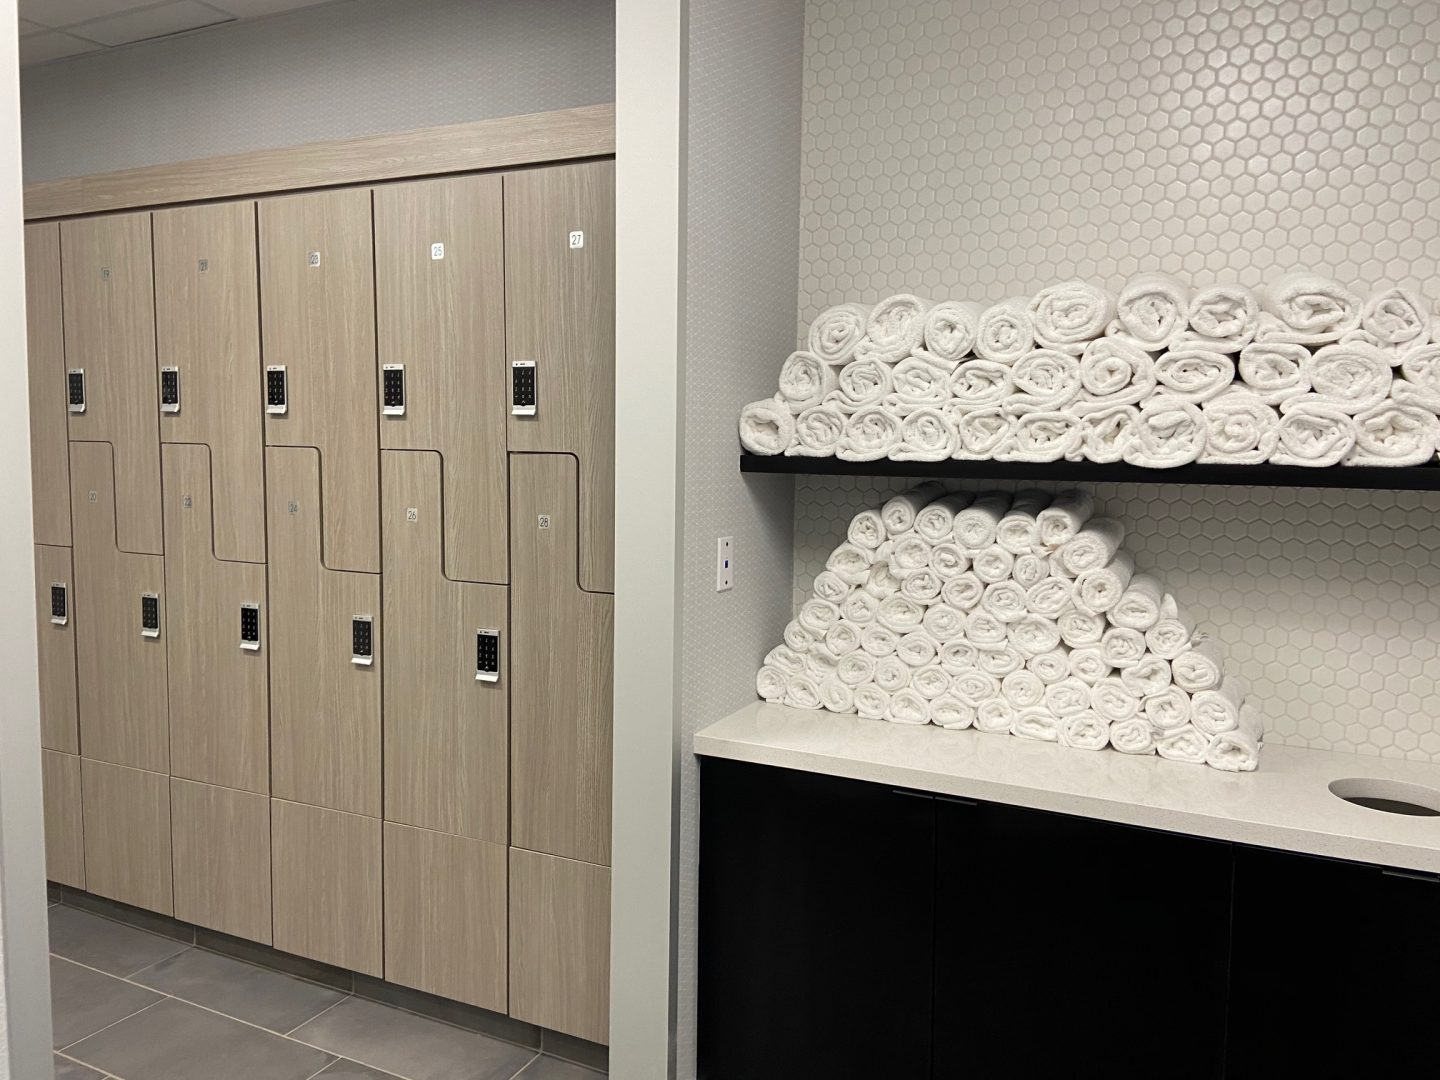 Houston Architecture Building Repositioning 1415 LOUISIANA FITNESS CENTER Houston Corporate Interior Design Locker Room Towels Storage